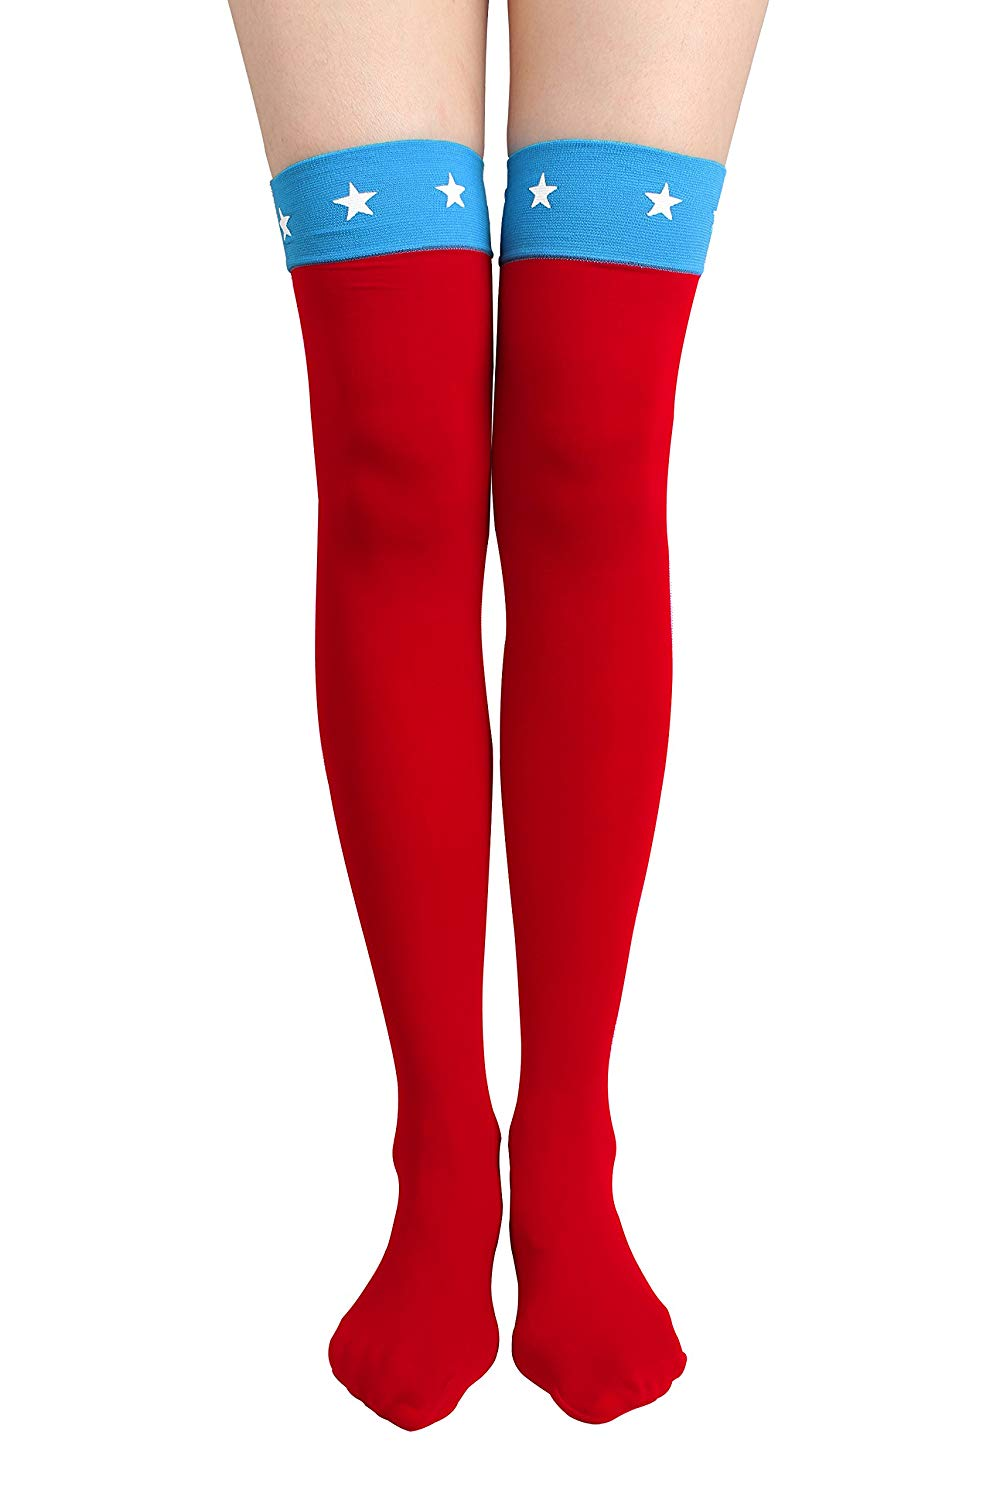 9a4d0c13db8d9 Get Quotations · Thigh High Long sock Over Knee High Socks Solid Stockings  Costume for Halloween